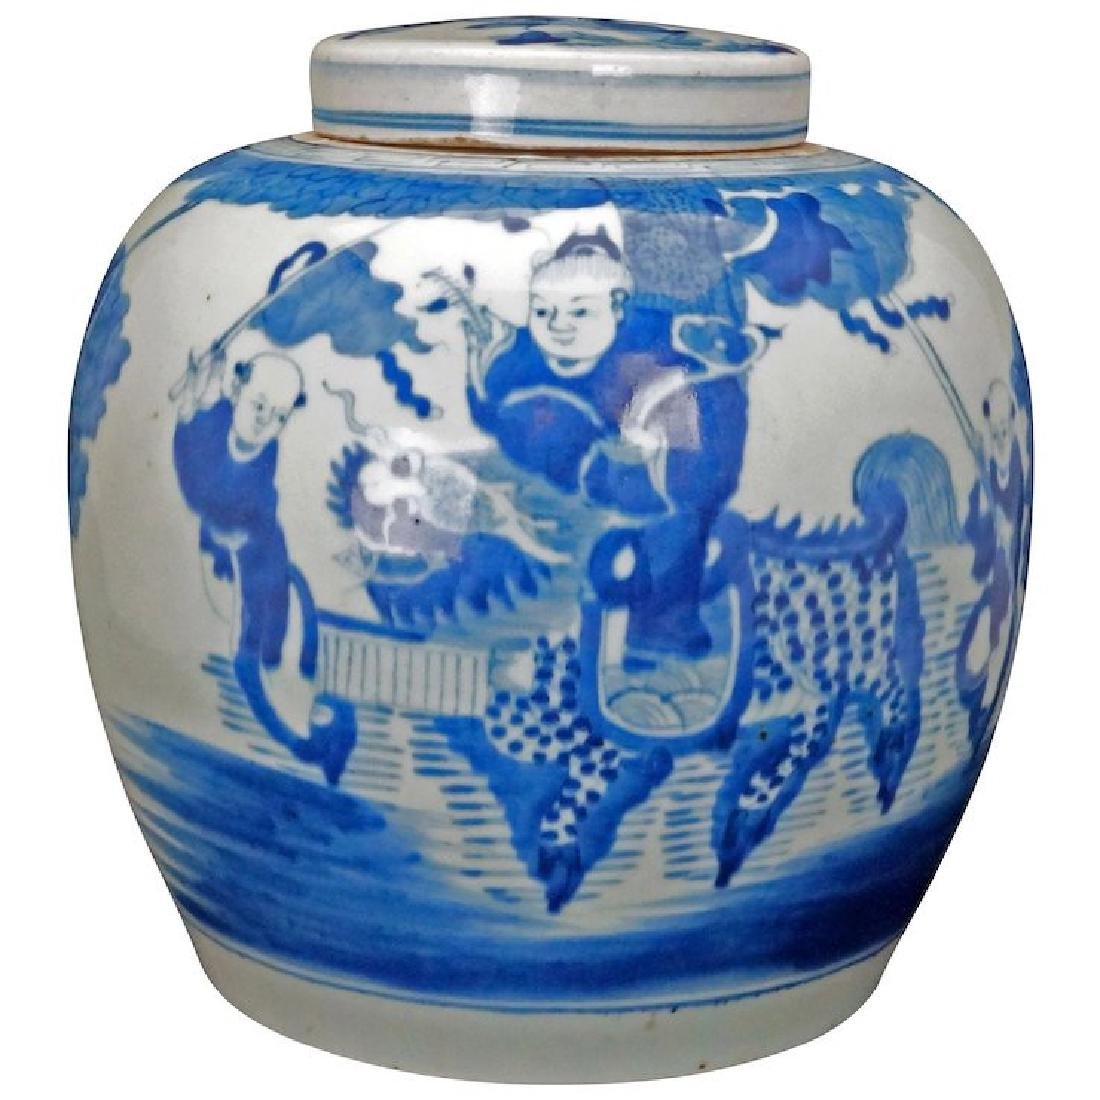 Chinese blue and white ginger or storage jar with lid